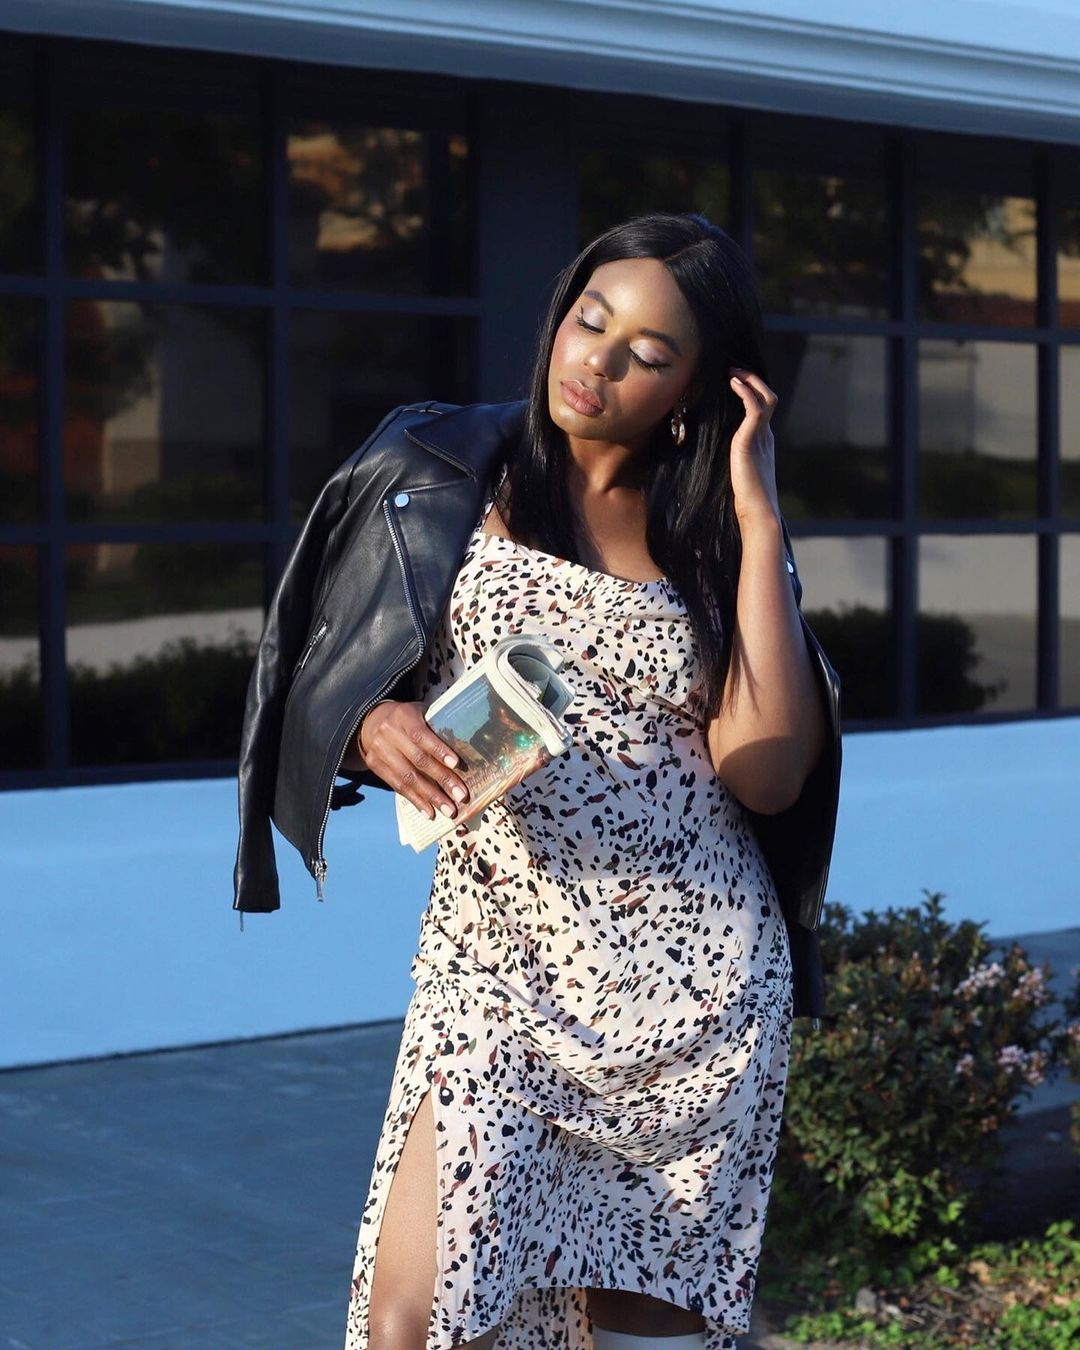 Kaye Bassey in an animal print dress and leather Moto jacket